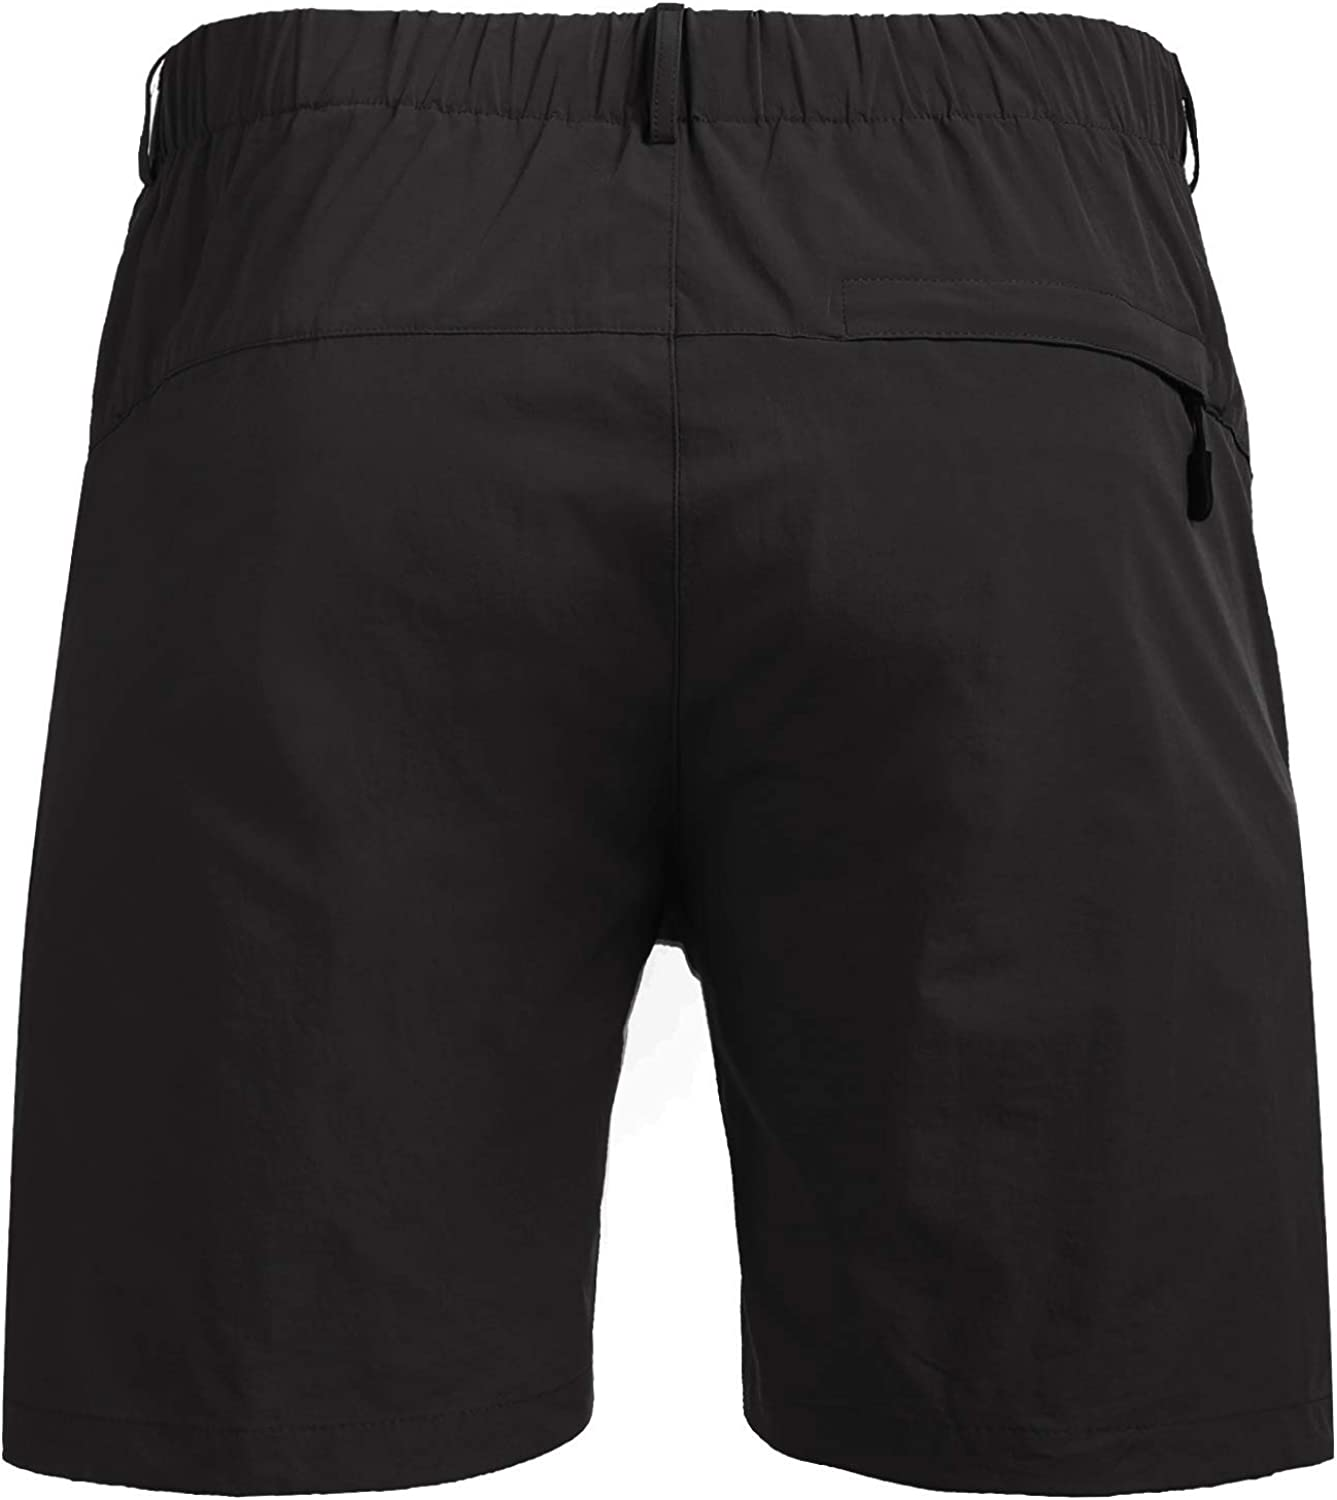 COOFANDY Mens Stretch Cargo Shorts Quick Dry Work Out Shorts for Hiking Camping Travel